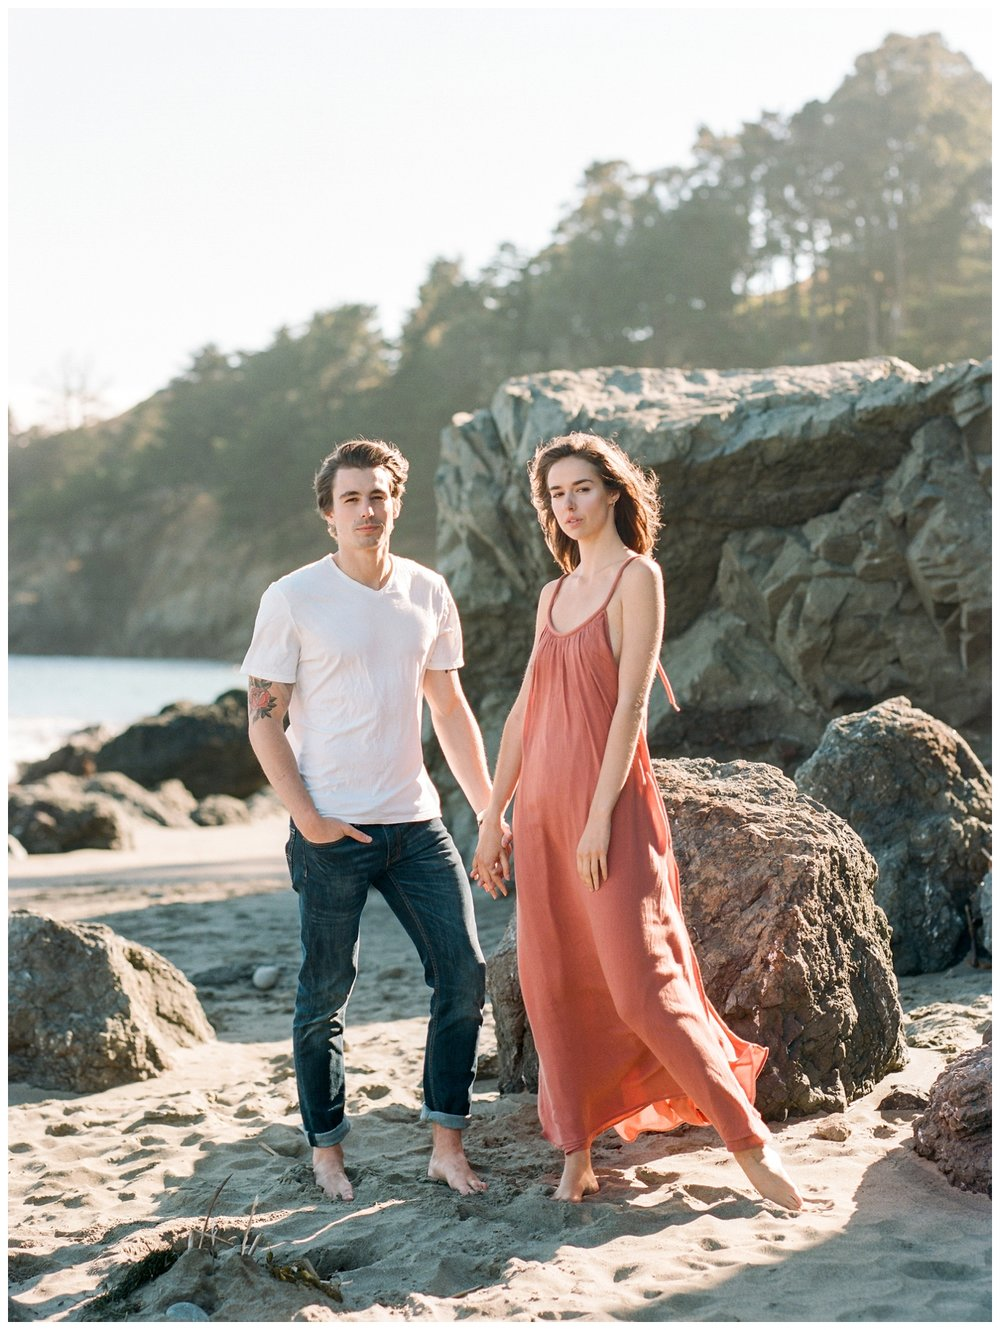 Muir Beach Engagement Session in San Francisco California by fine art wedding photographer Lissa Ryan Photography